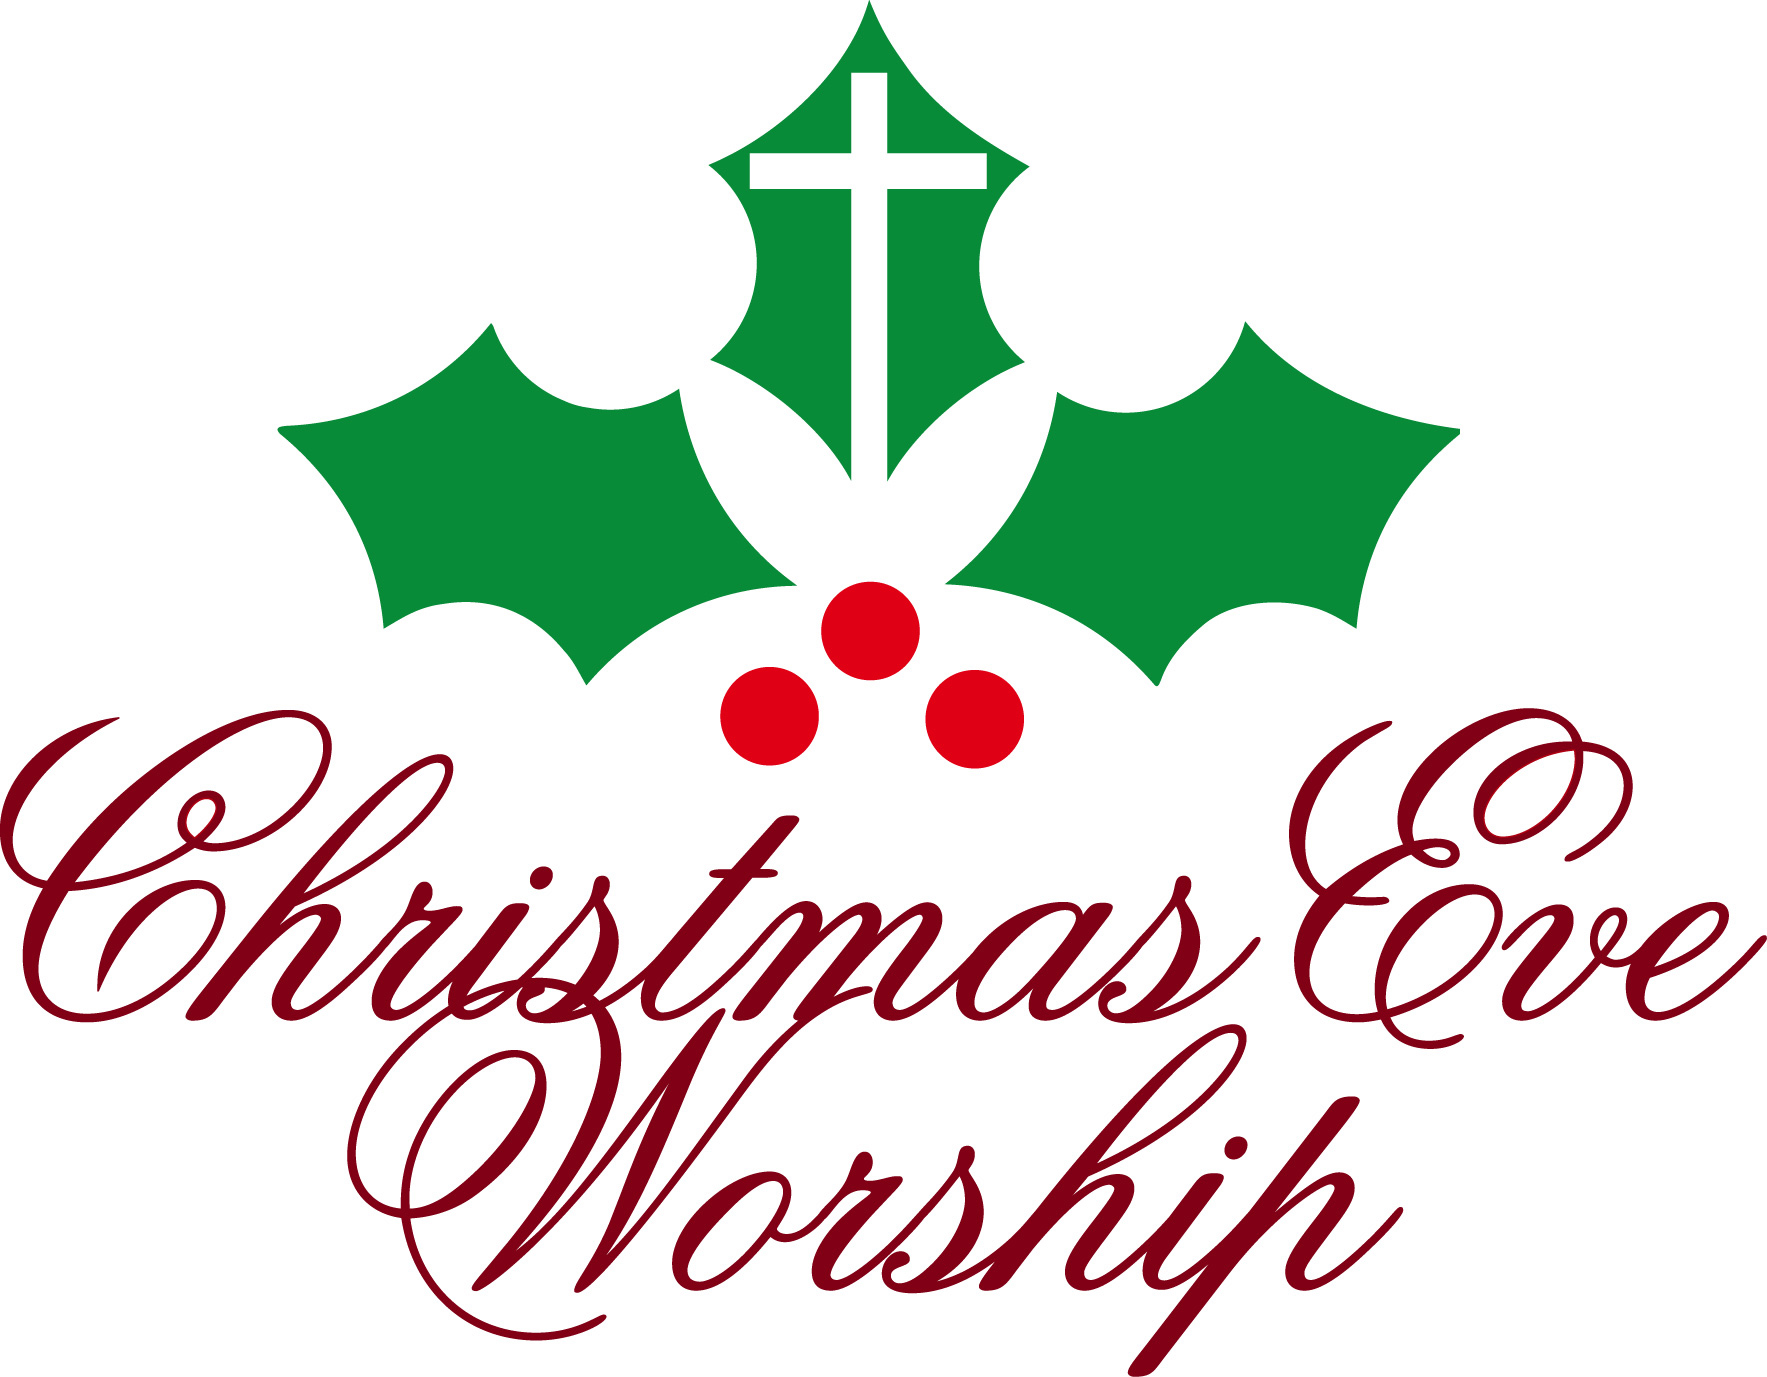 Free Christmas Eve Cliparts, Download Free Clip Art, Free.